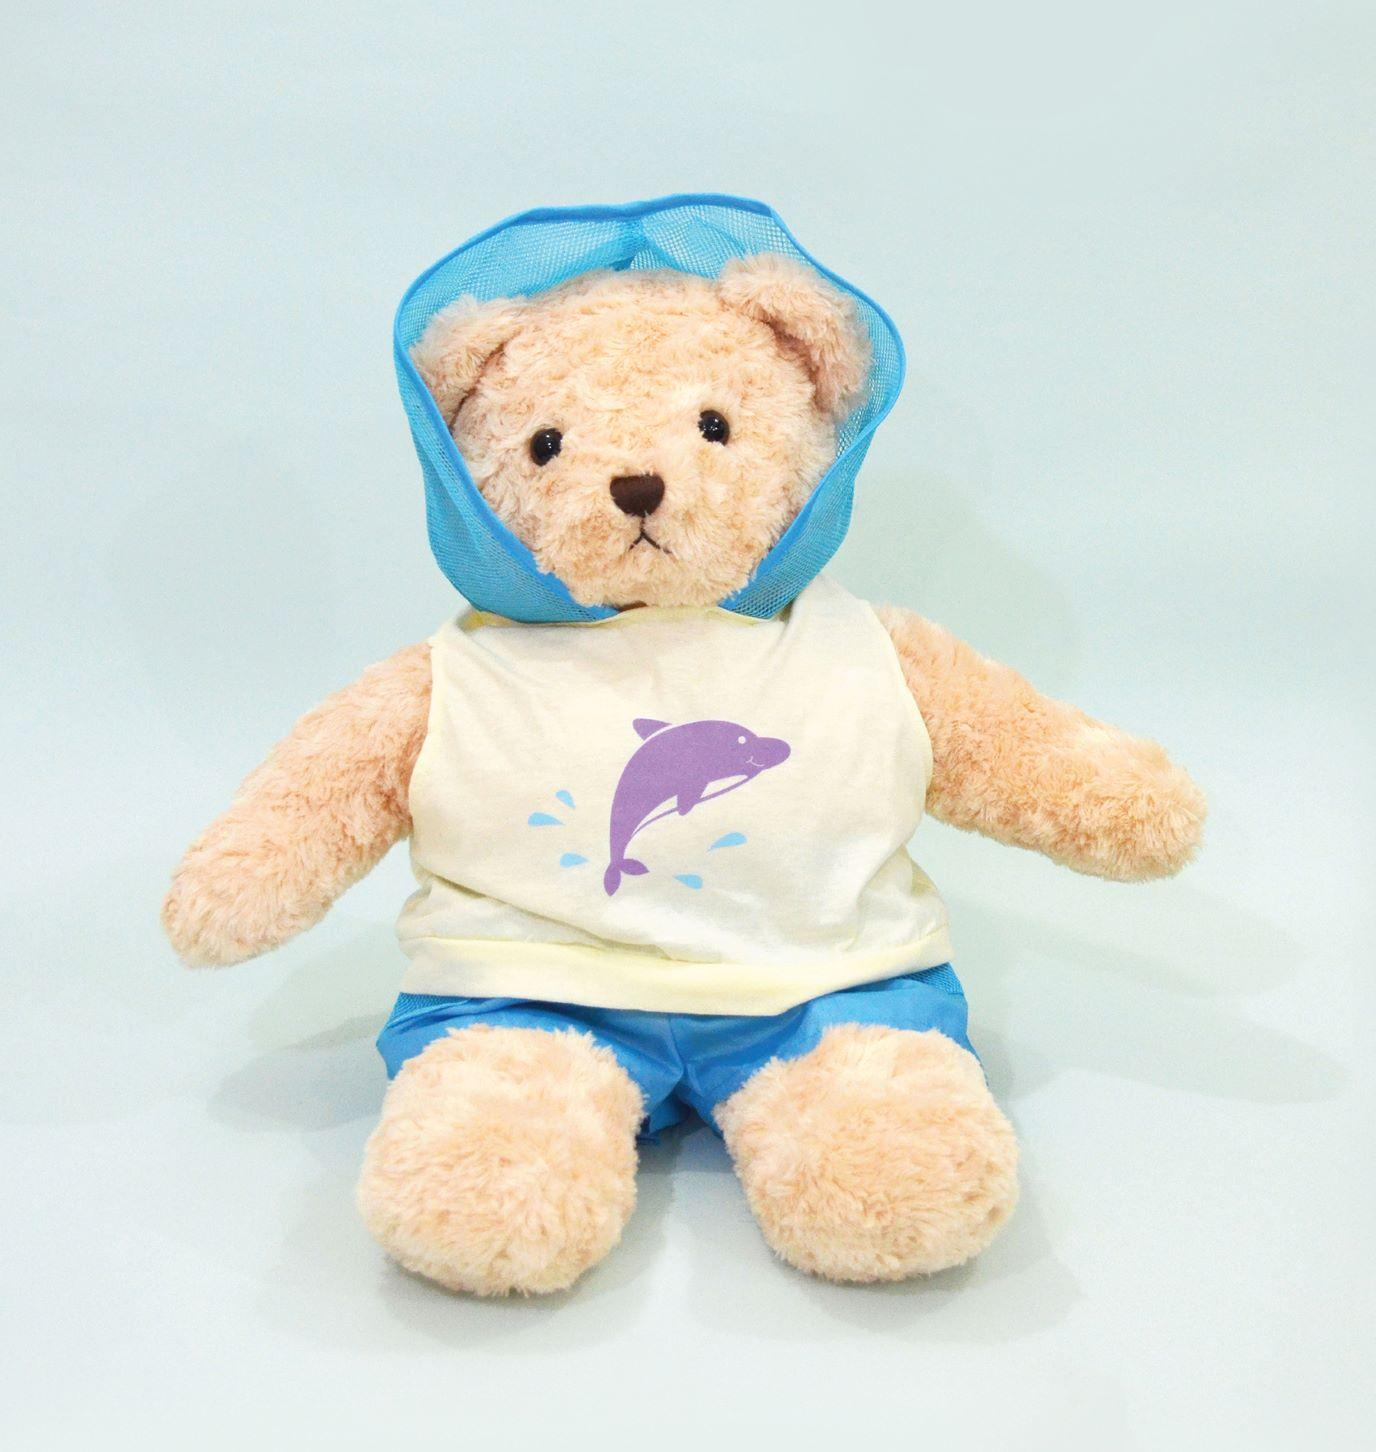 KADO TEDDY BEAR TOBY WITH OUTFIT 22 INCHI